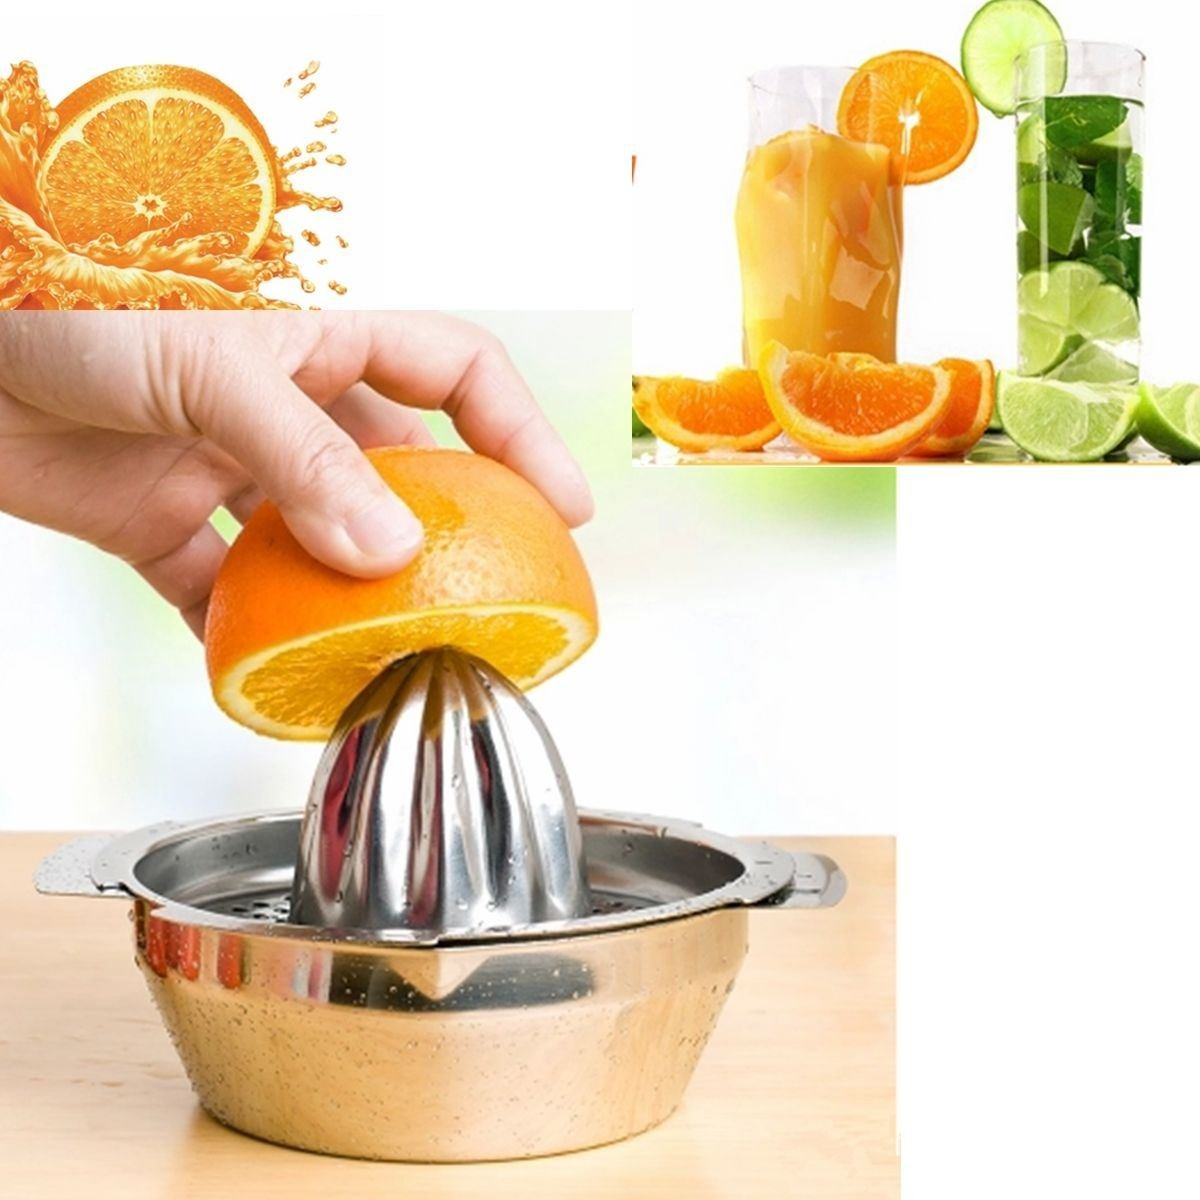 Kitchen Home Lemon Fruits Citrus Juicer Hand Press Squeezer Tool Stainless Steel by Hand Juicers